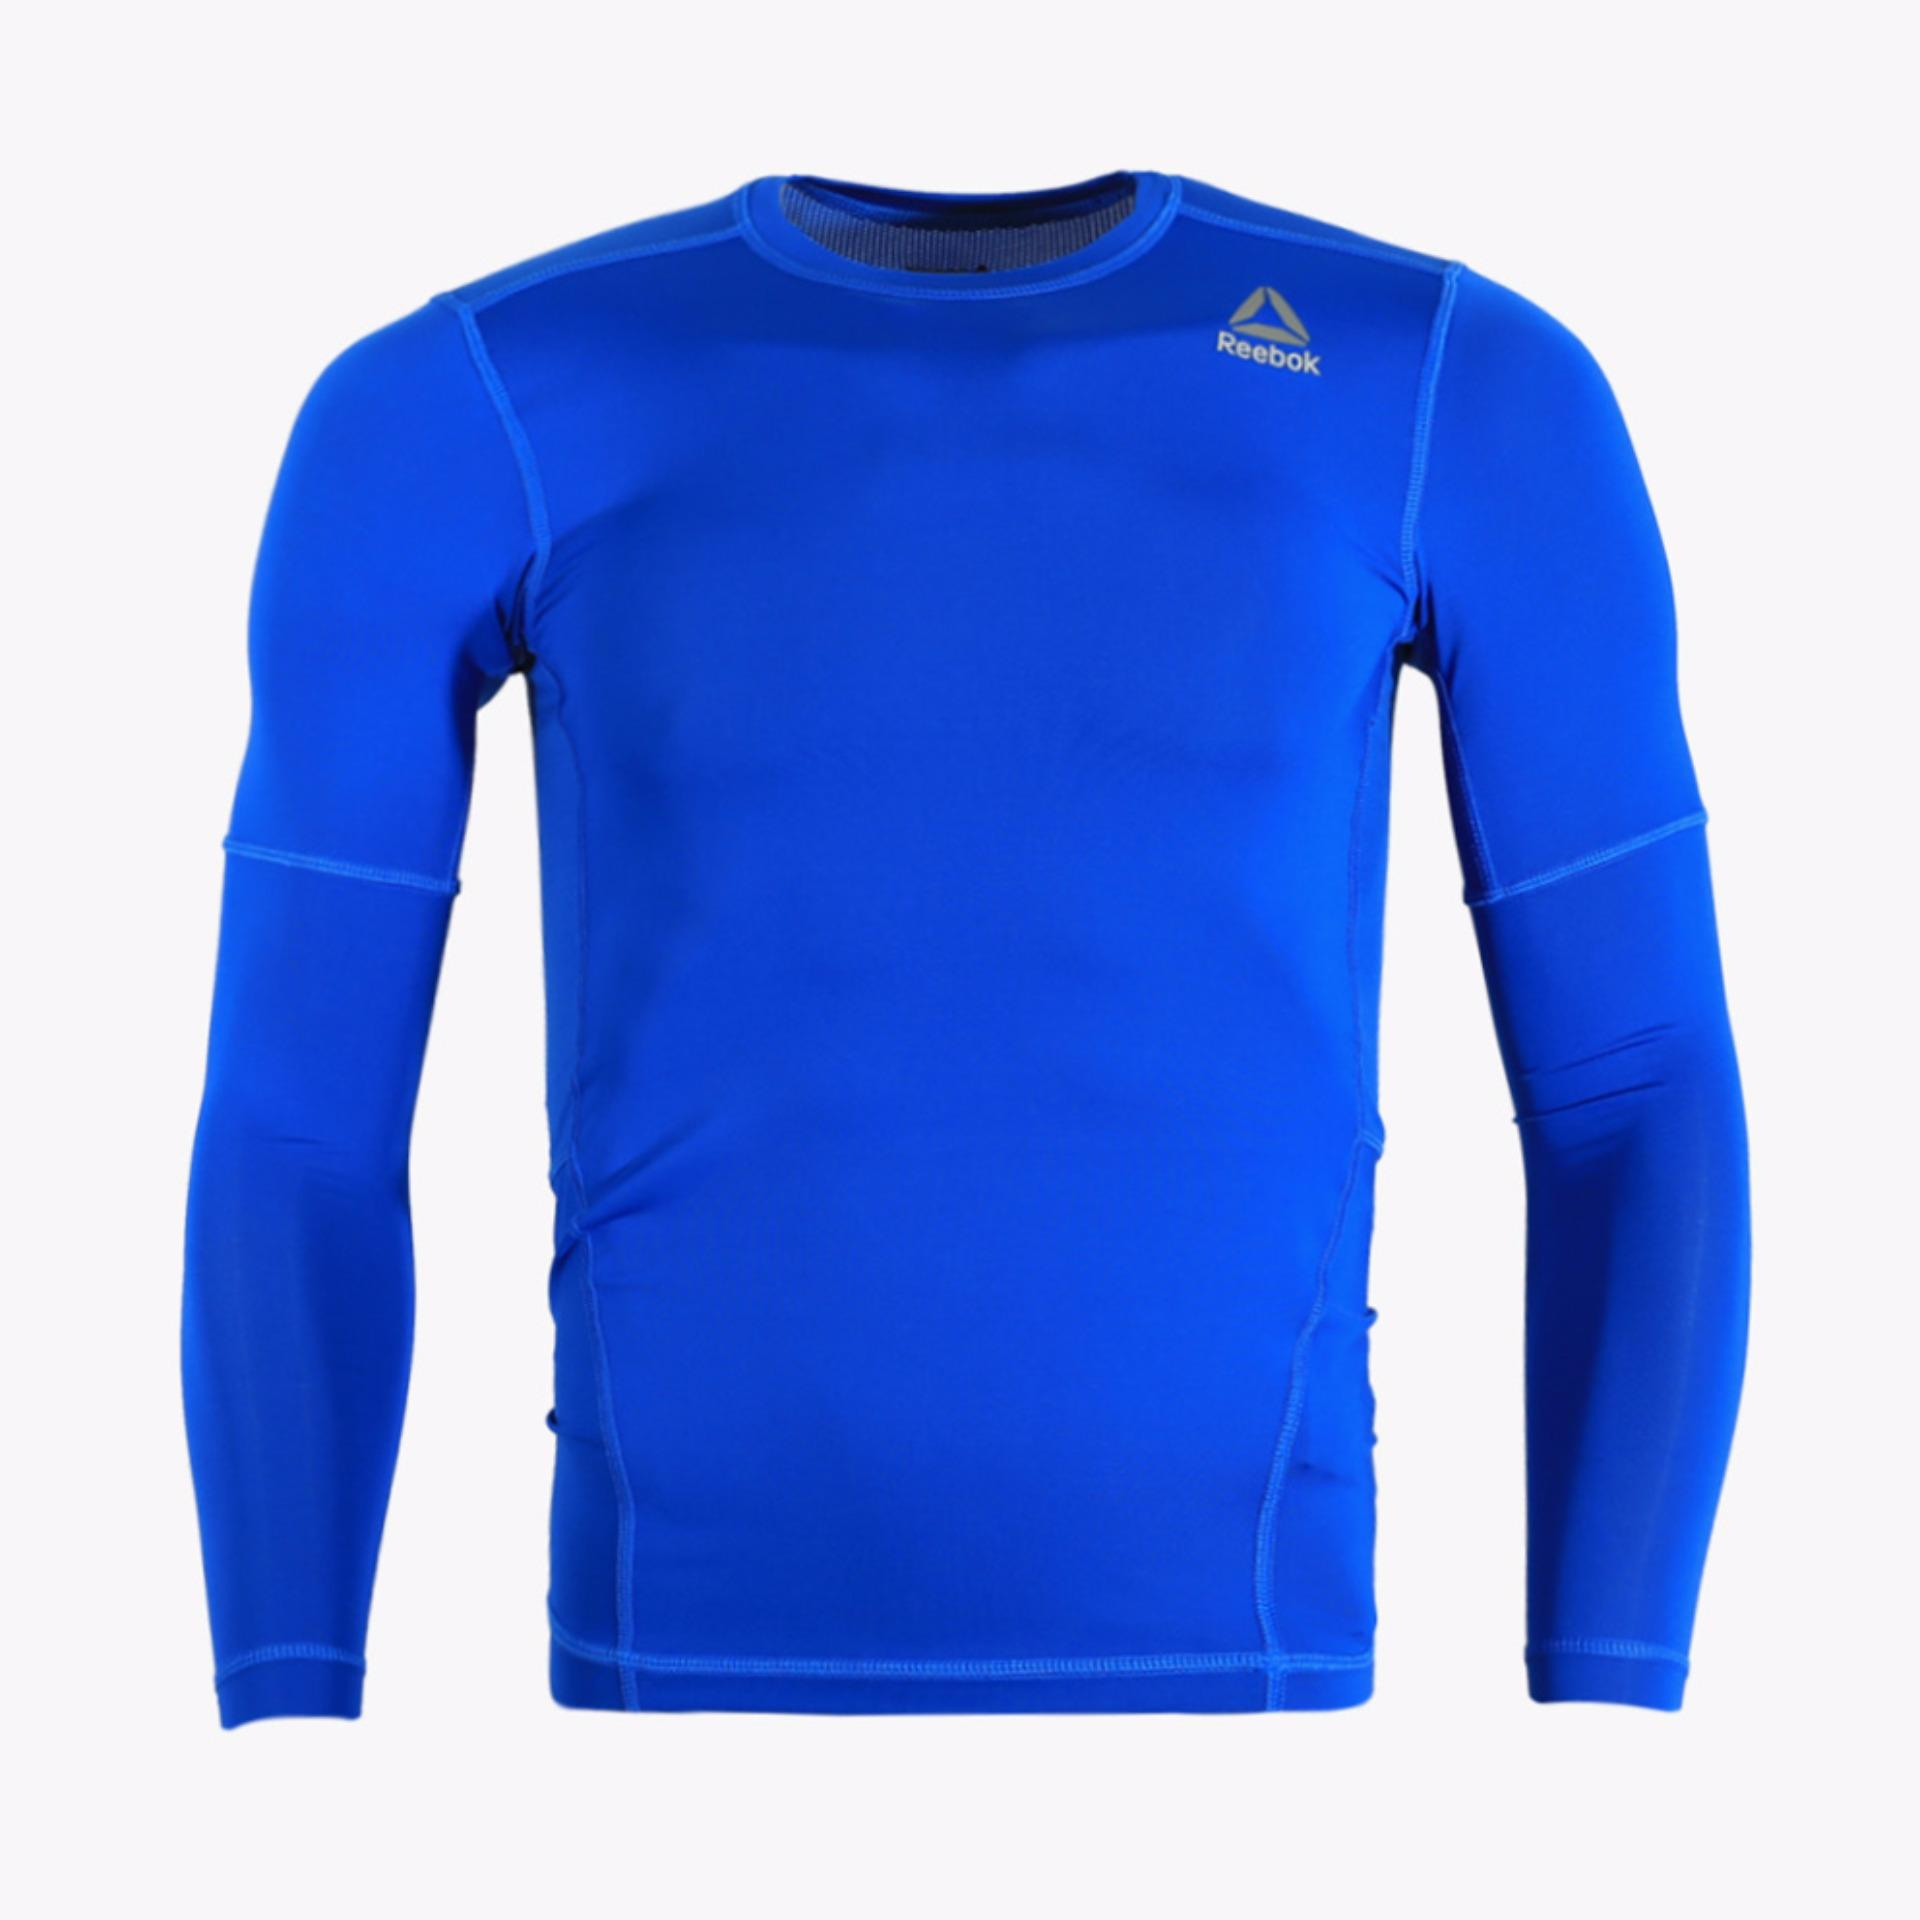 Jual Reebok Com Men S Long Sleeve Tee Biru Reebok Grosir